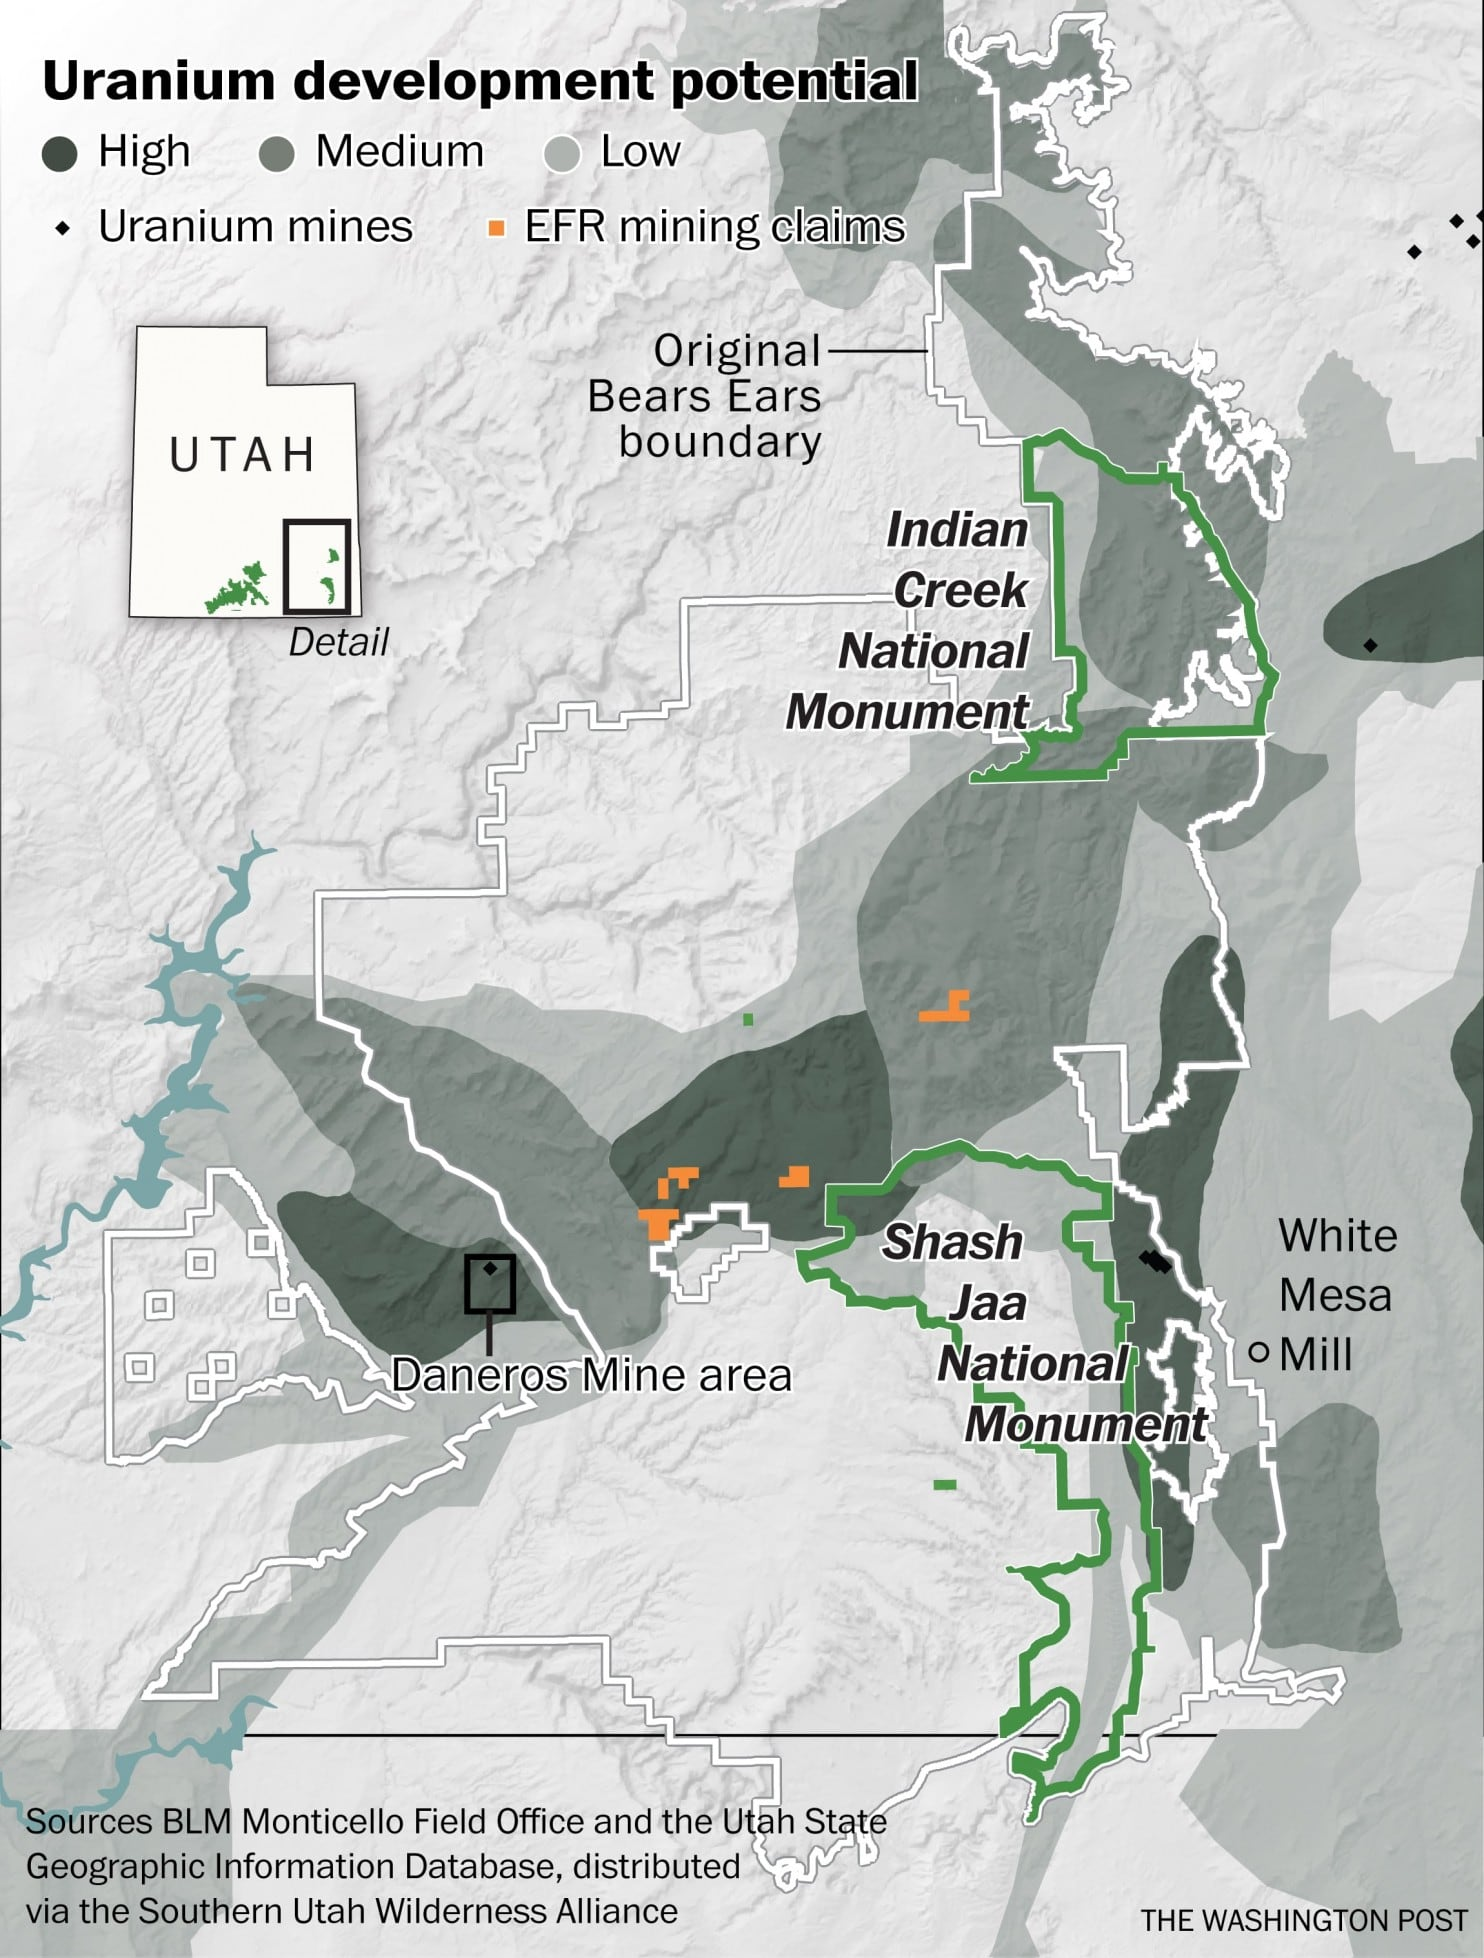 Map of Uranium development potential in Bears Ears area, Washington Post